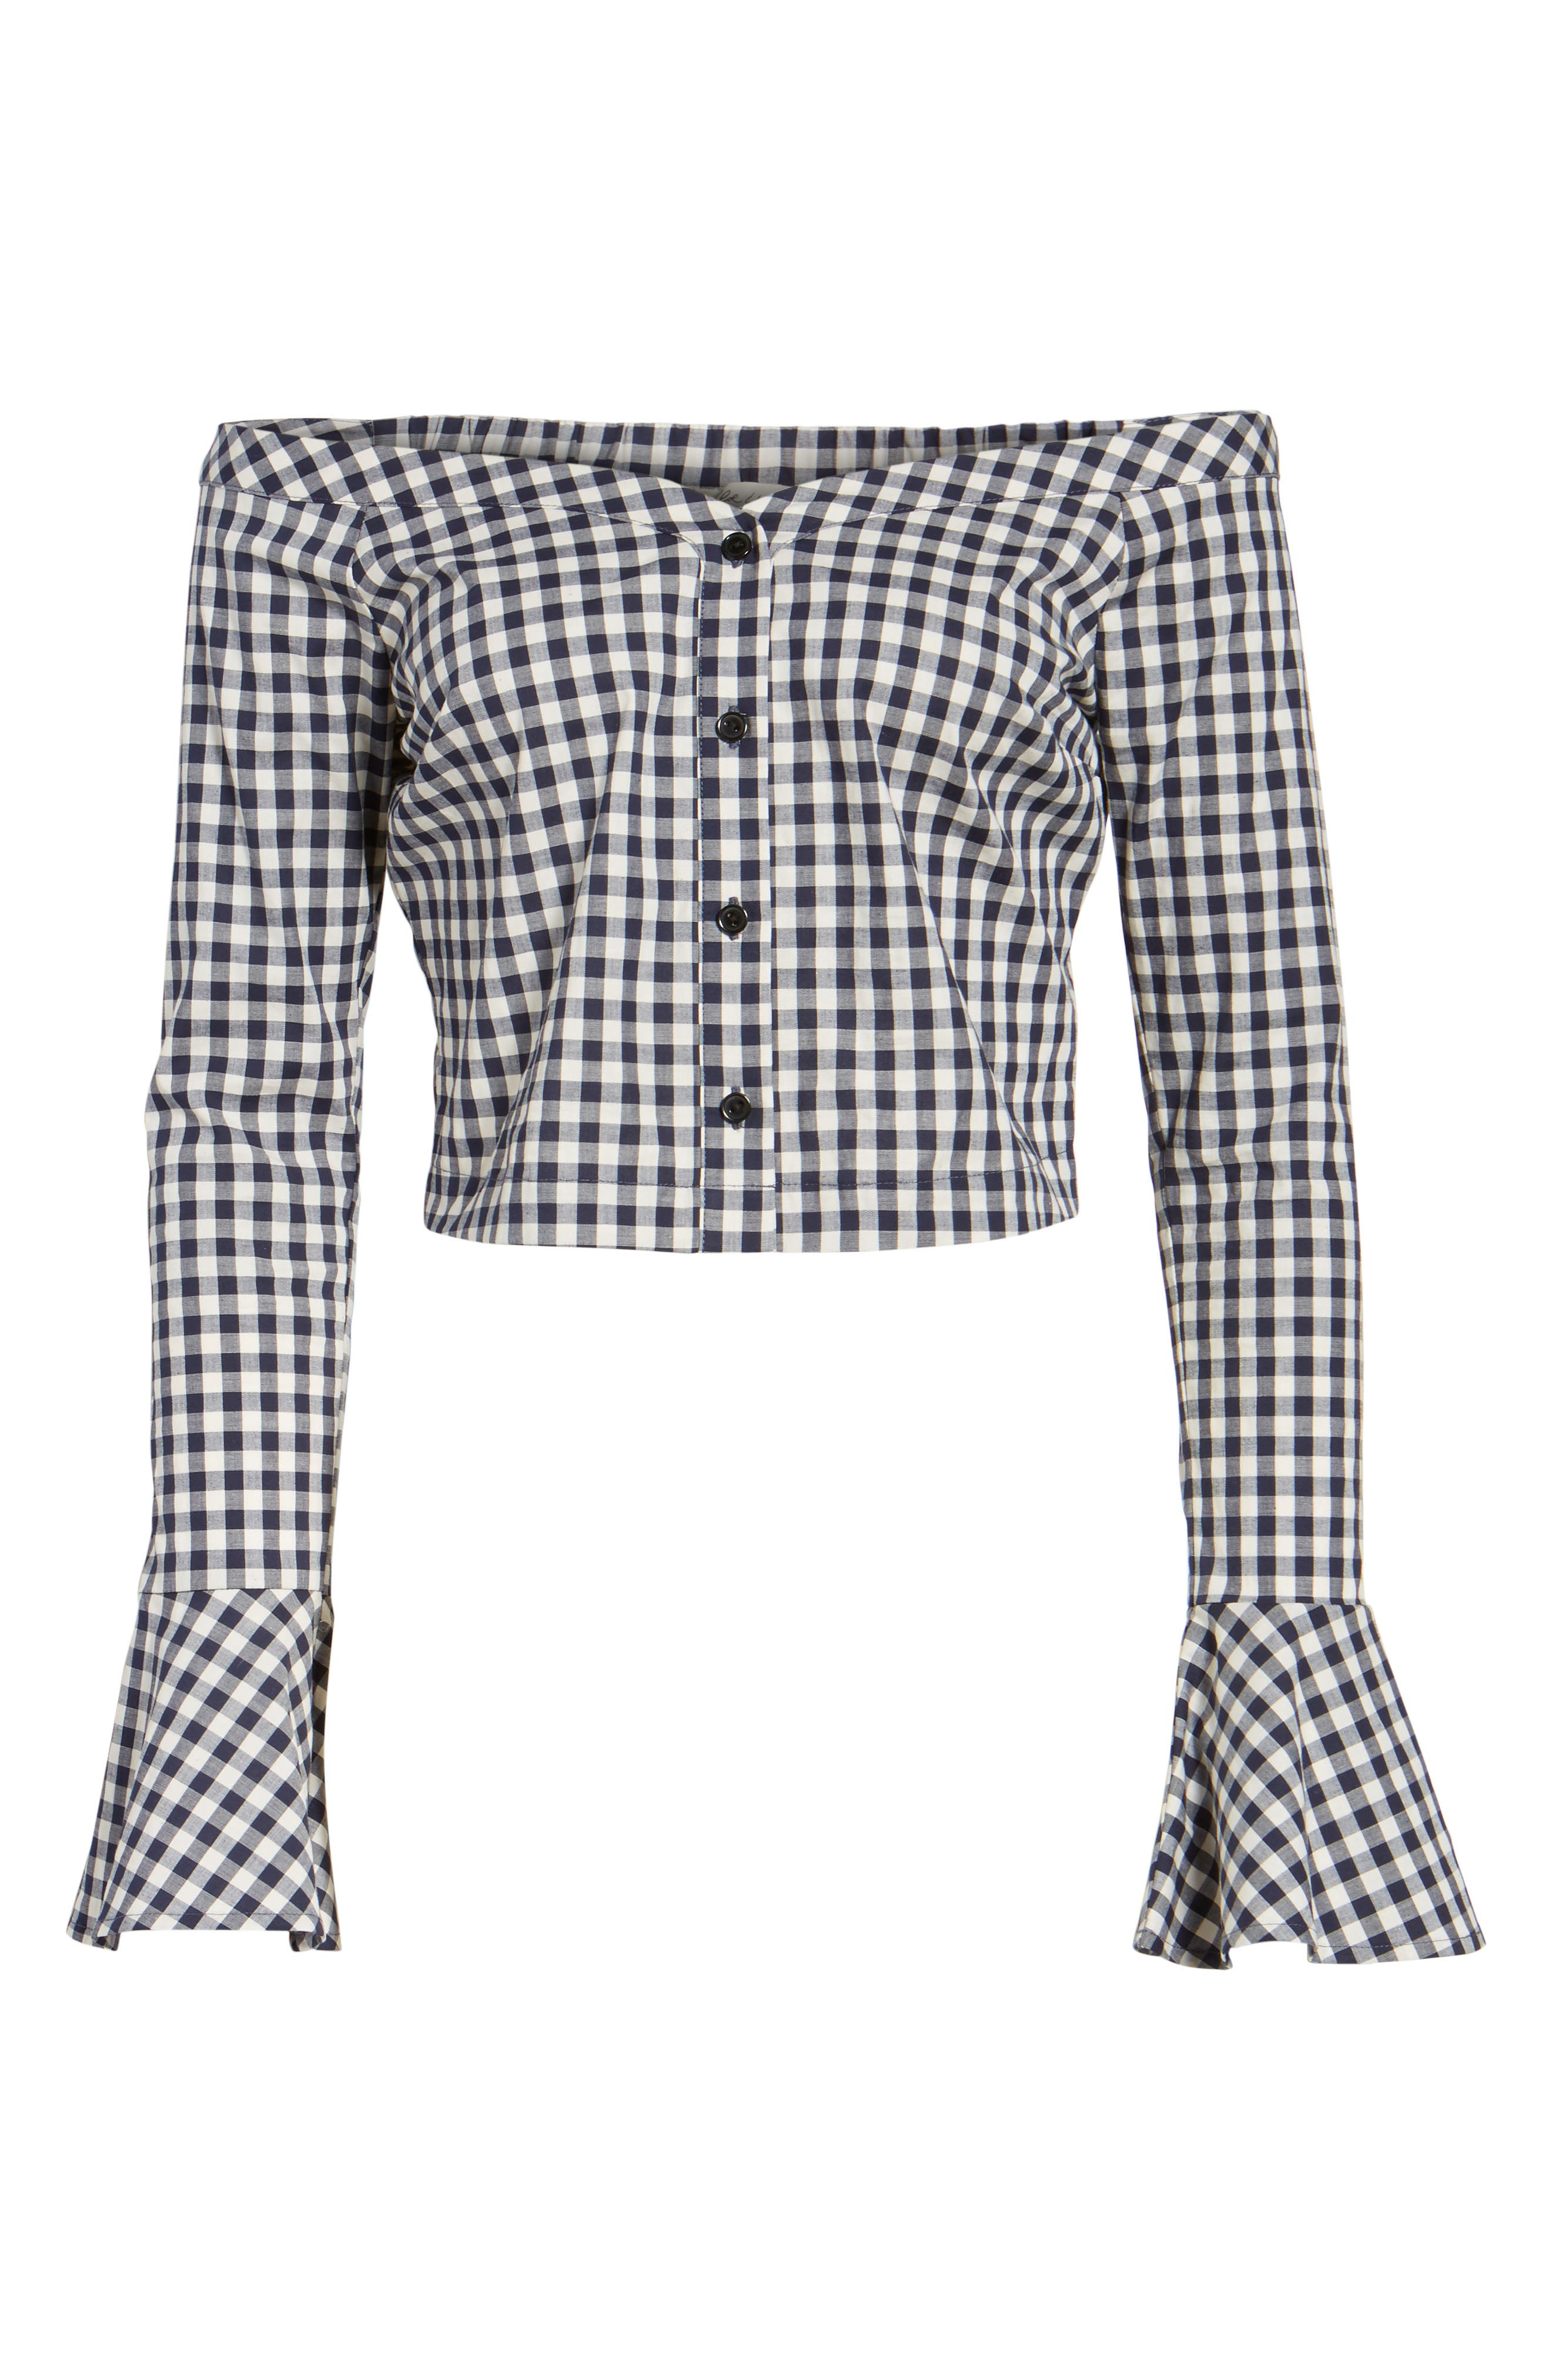 Bell Sleeve Off the Shoulder Crop Top,                             Alternate thumbnail 6, color,                             Navy/ White Gingham